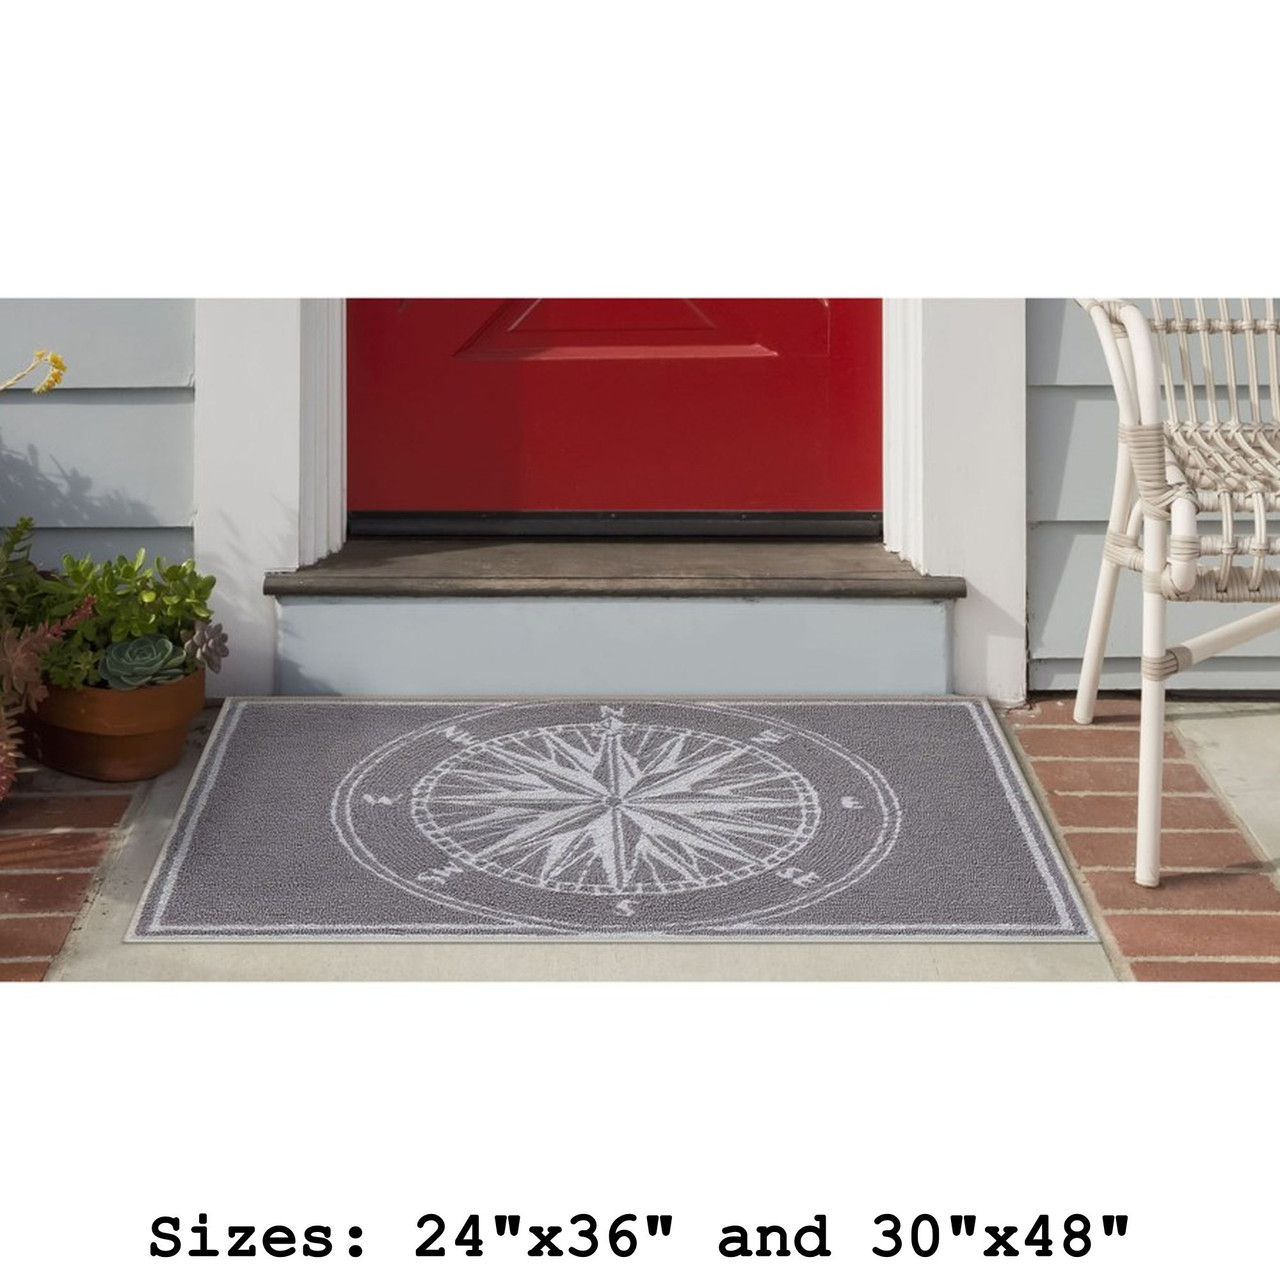 Frontporch Compass Rose Indoor/Outdoor Rug -  Small Rectangle Lifestyle